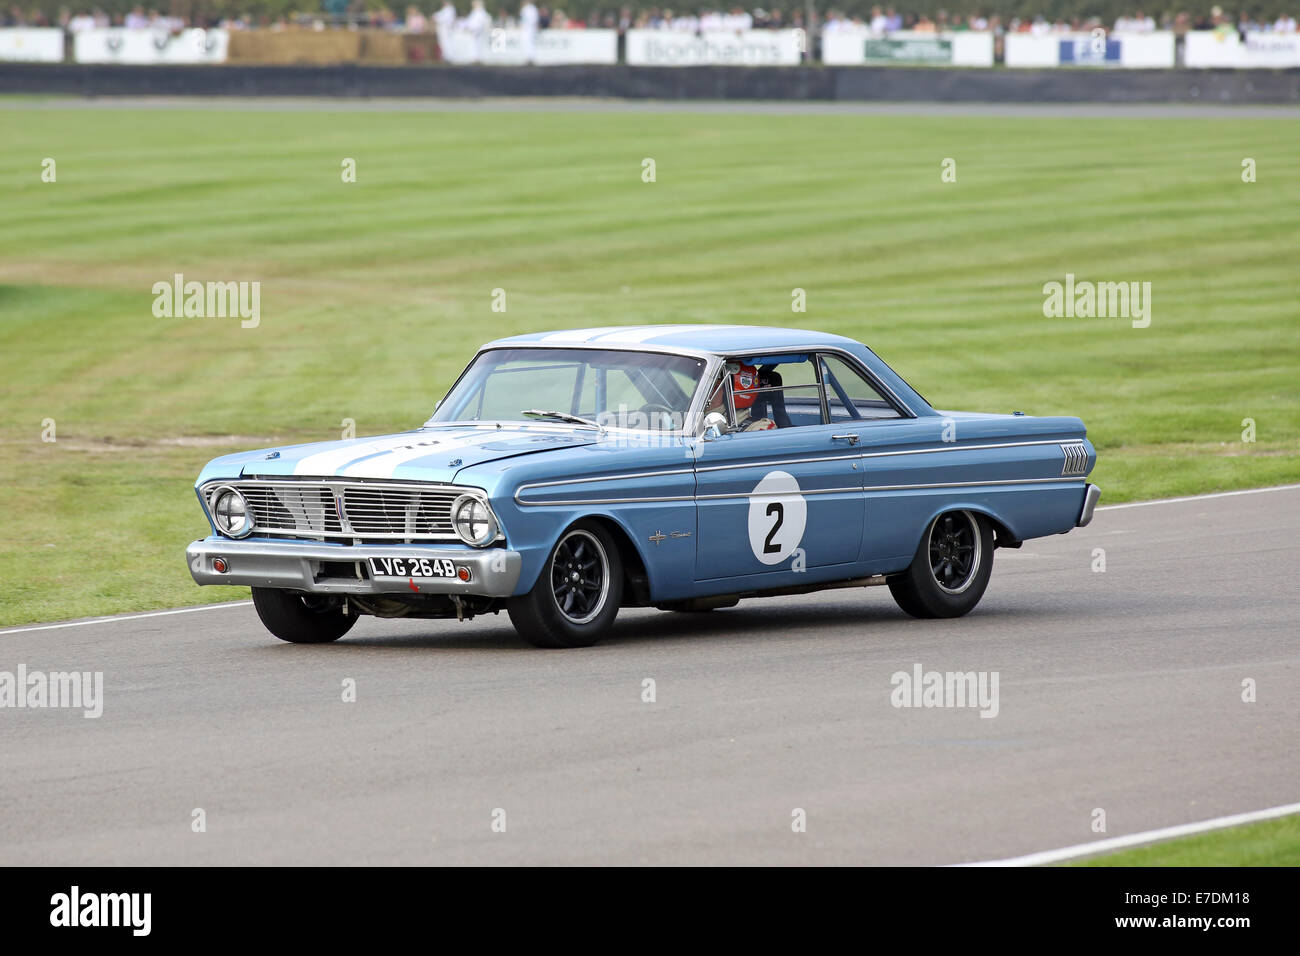 Chichester, West Sussex, UK. 13th Sep, 2014. Pictures from the Goodwood Revival 2014 - The Shelby Cup - A race for Stock Photo